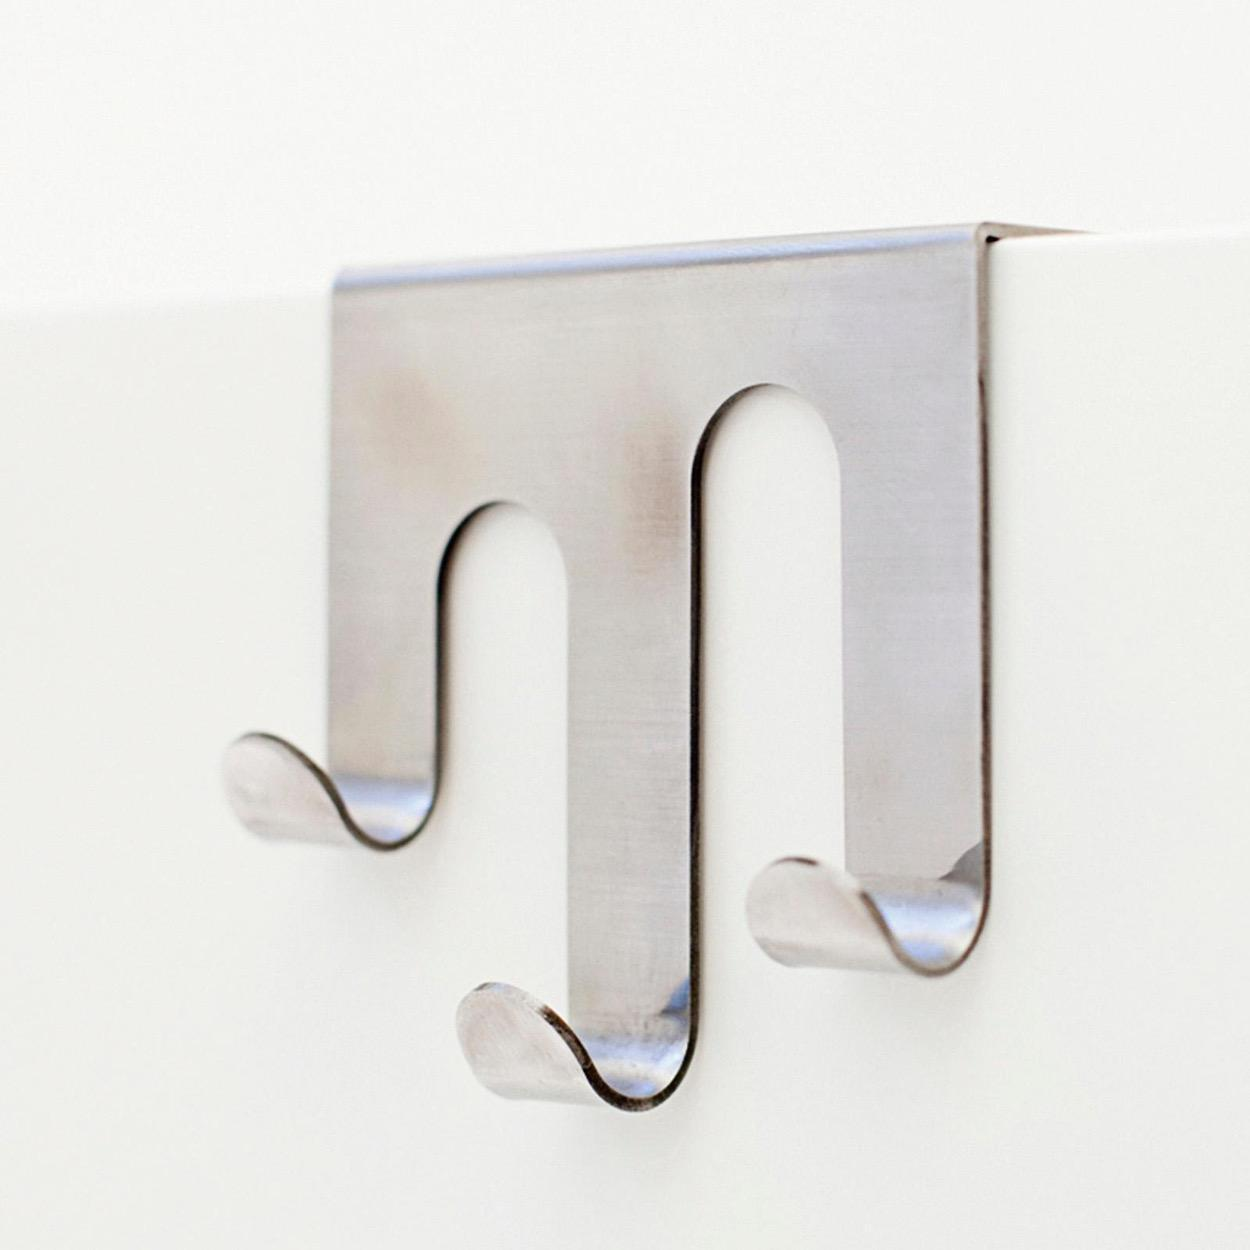 Bosign Triple J Hook - Brushed Stainless Steel